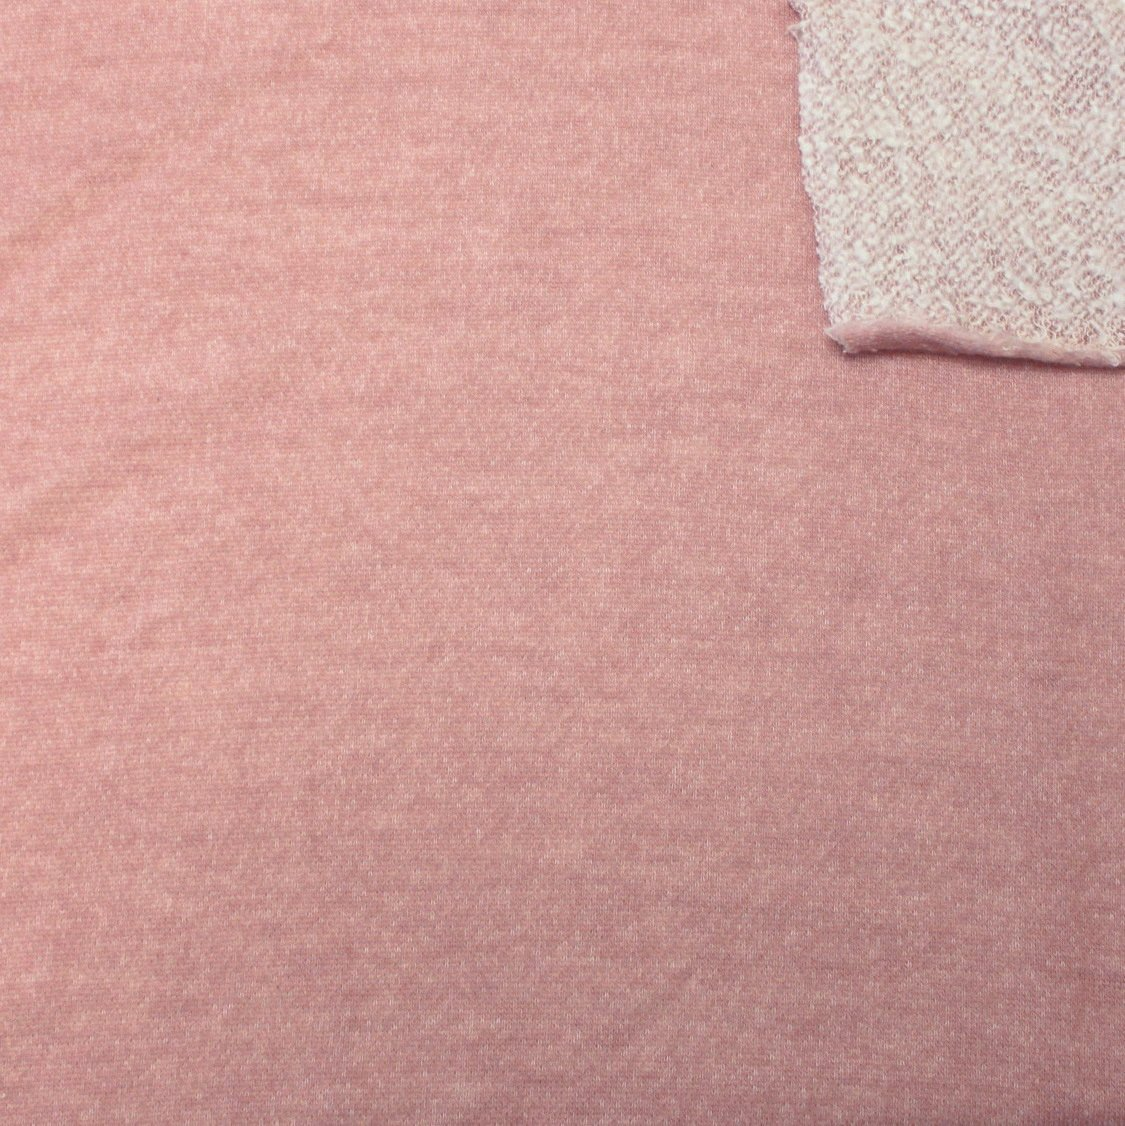 Dusty Mauve Brushed Heathered French Terry Knit Fabric - Raspberry Creek Fabrics Knit Fabric